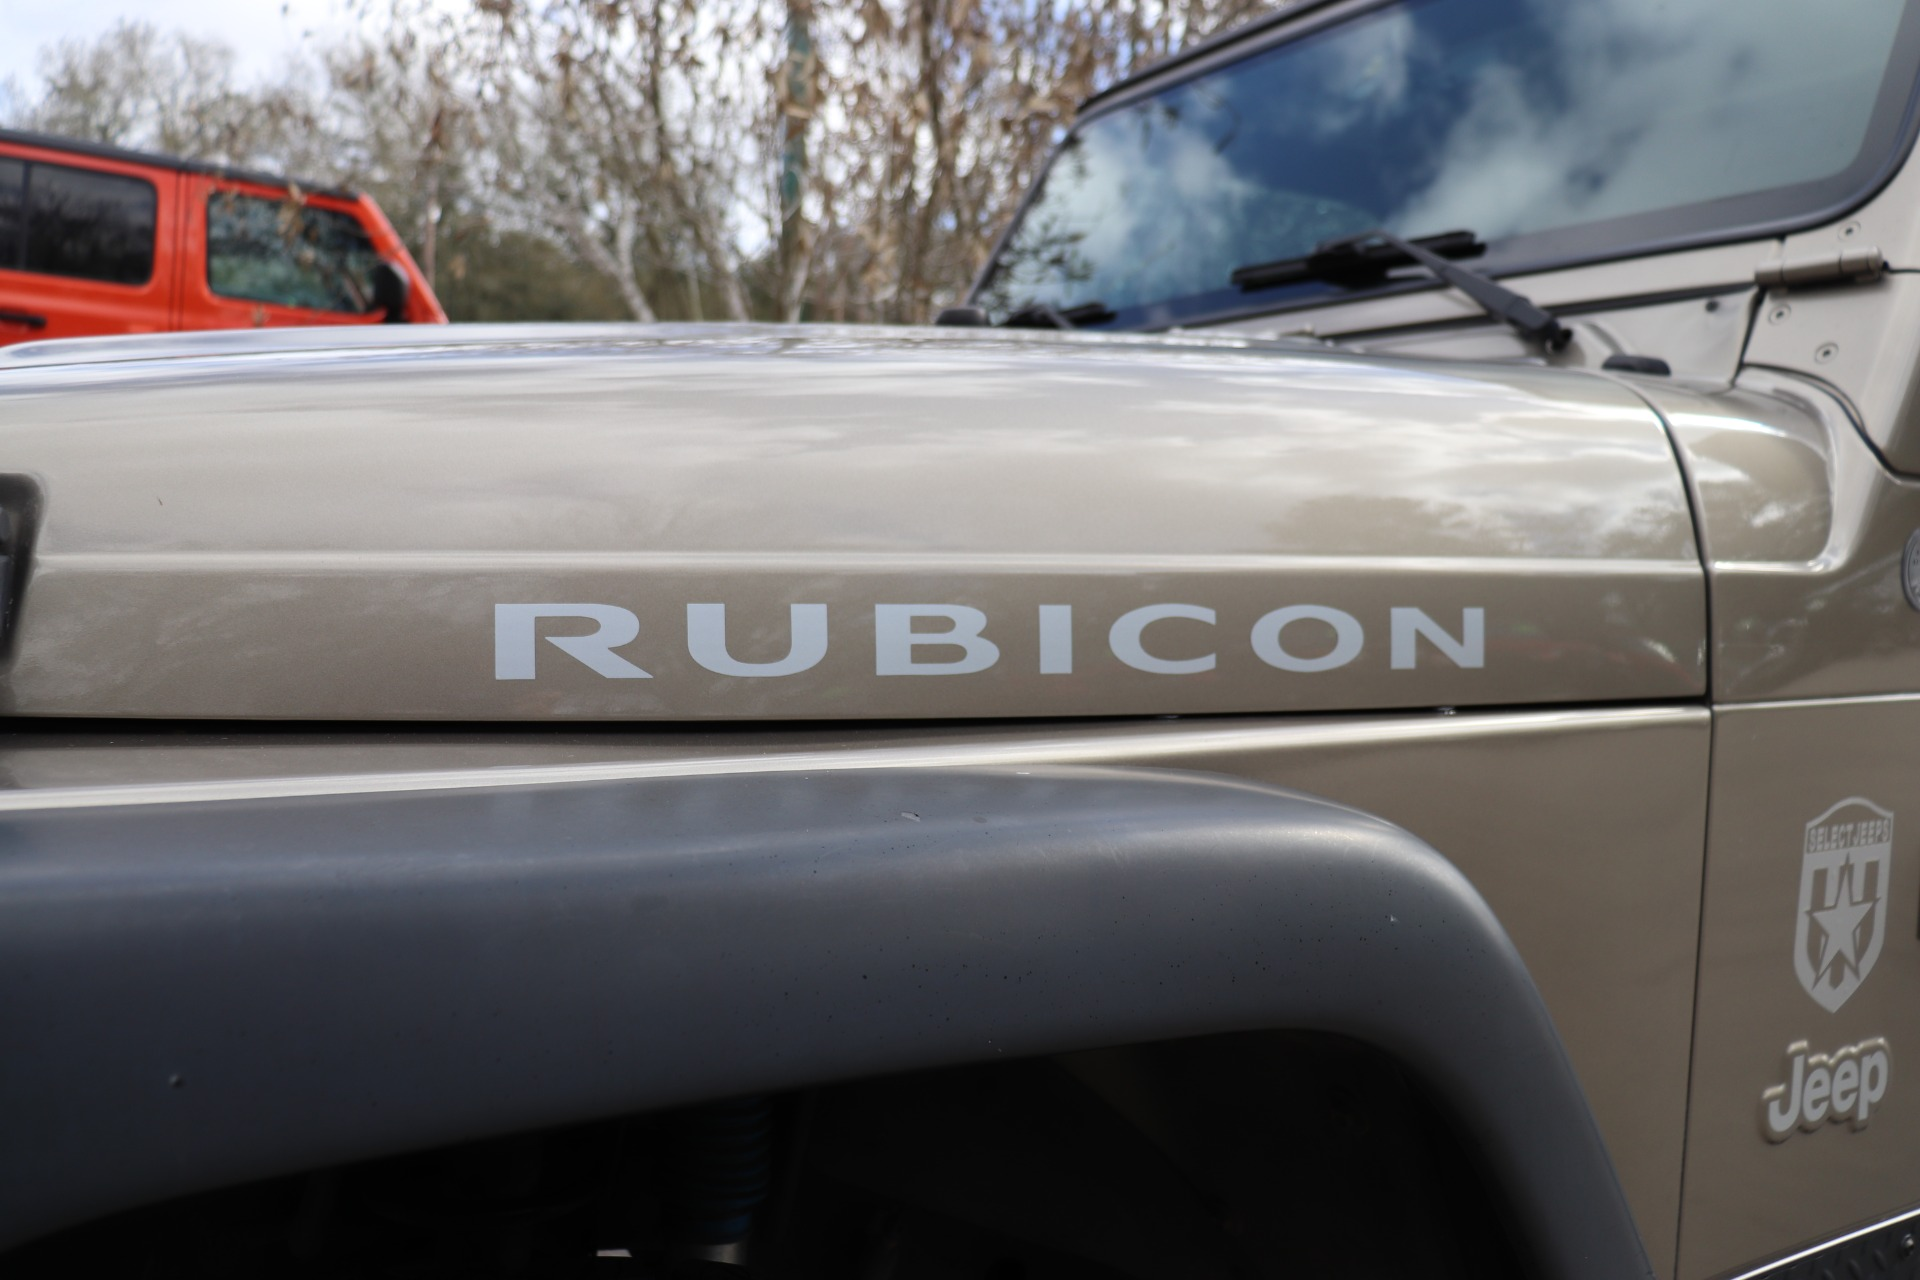 Used-2004-Jeep-Wrangler-Rubicon